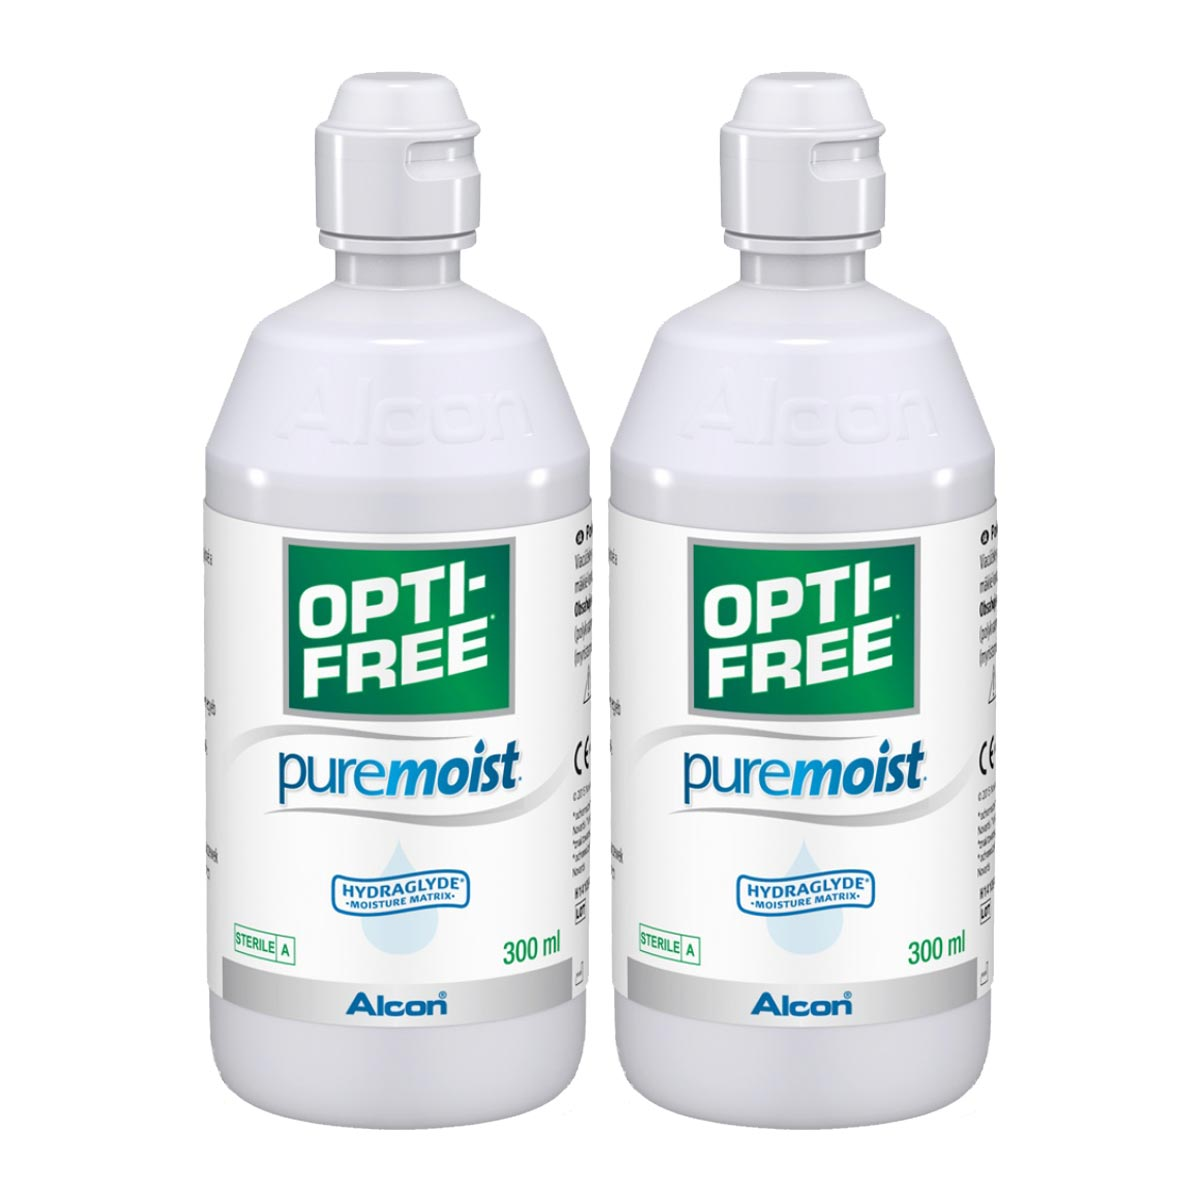 OptiFree PureMoist Twin Pack 2300ml